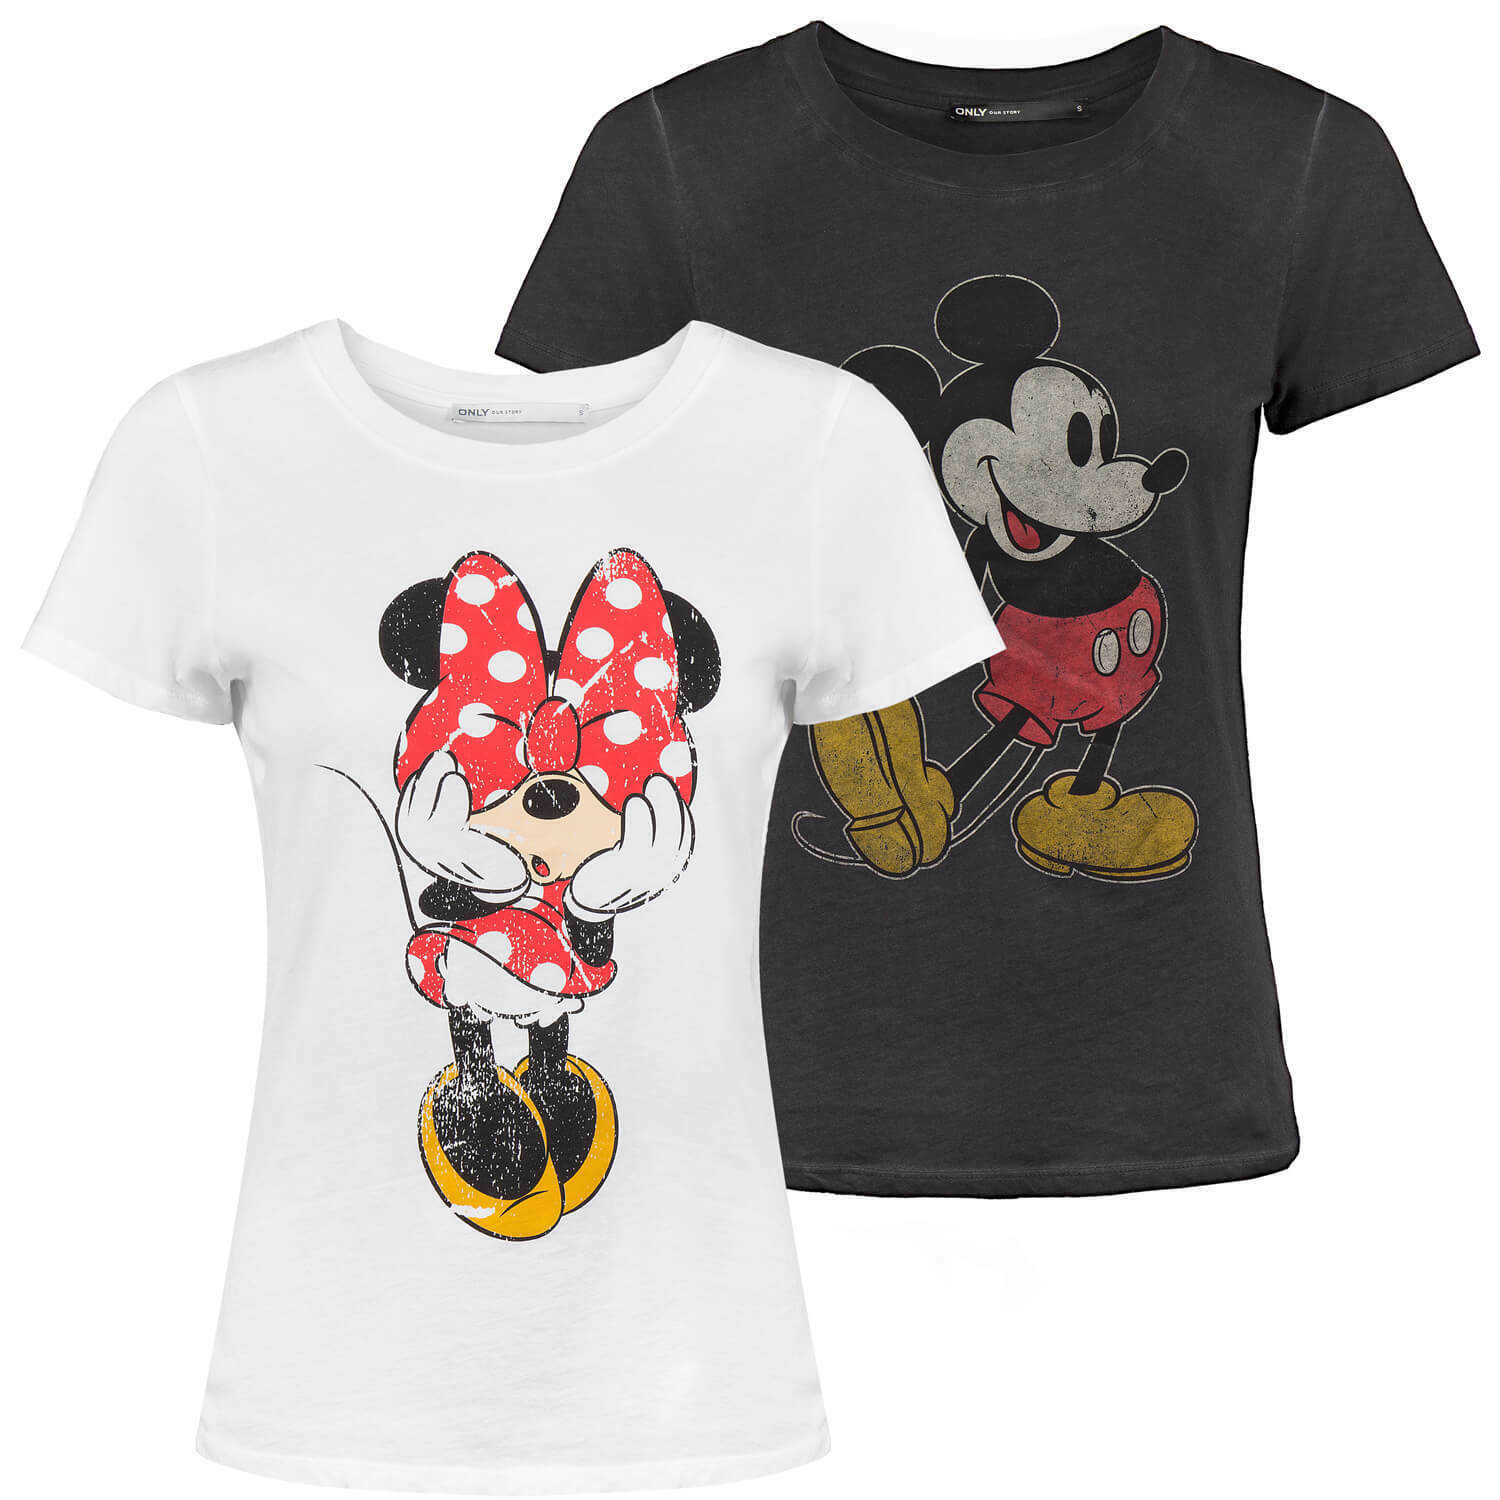 ONLY Damen T-Shirt Mickey Minnie Mouse Disney Shirt Top tailliert Front Print